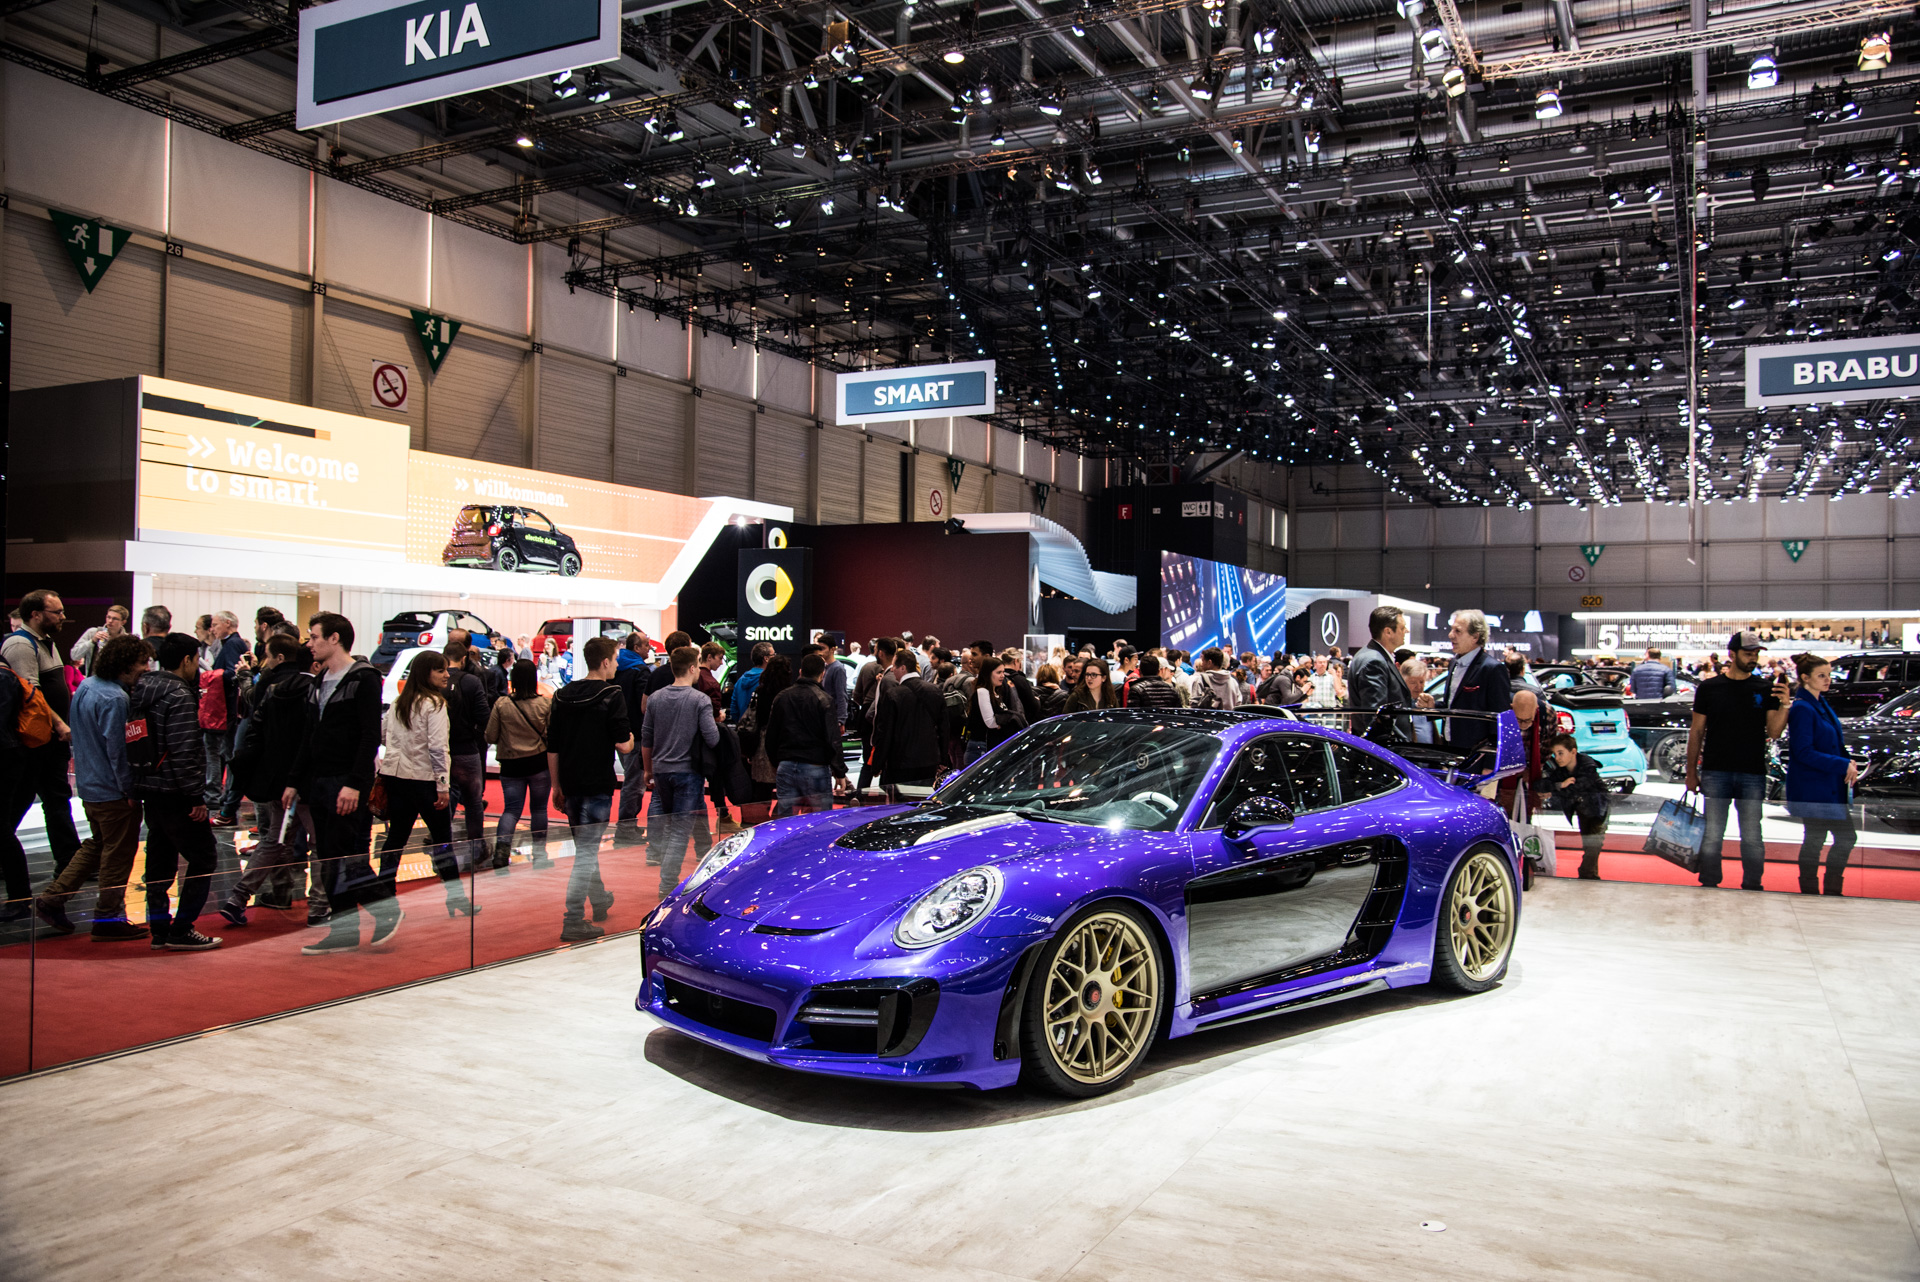 geneva-international-motor-show-igor-sinitsin-37